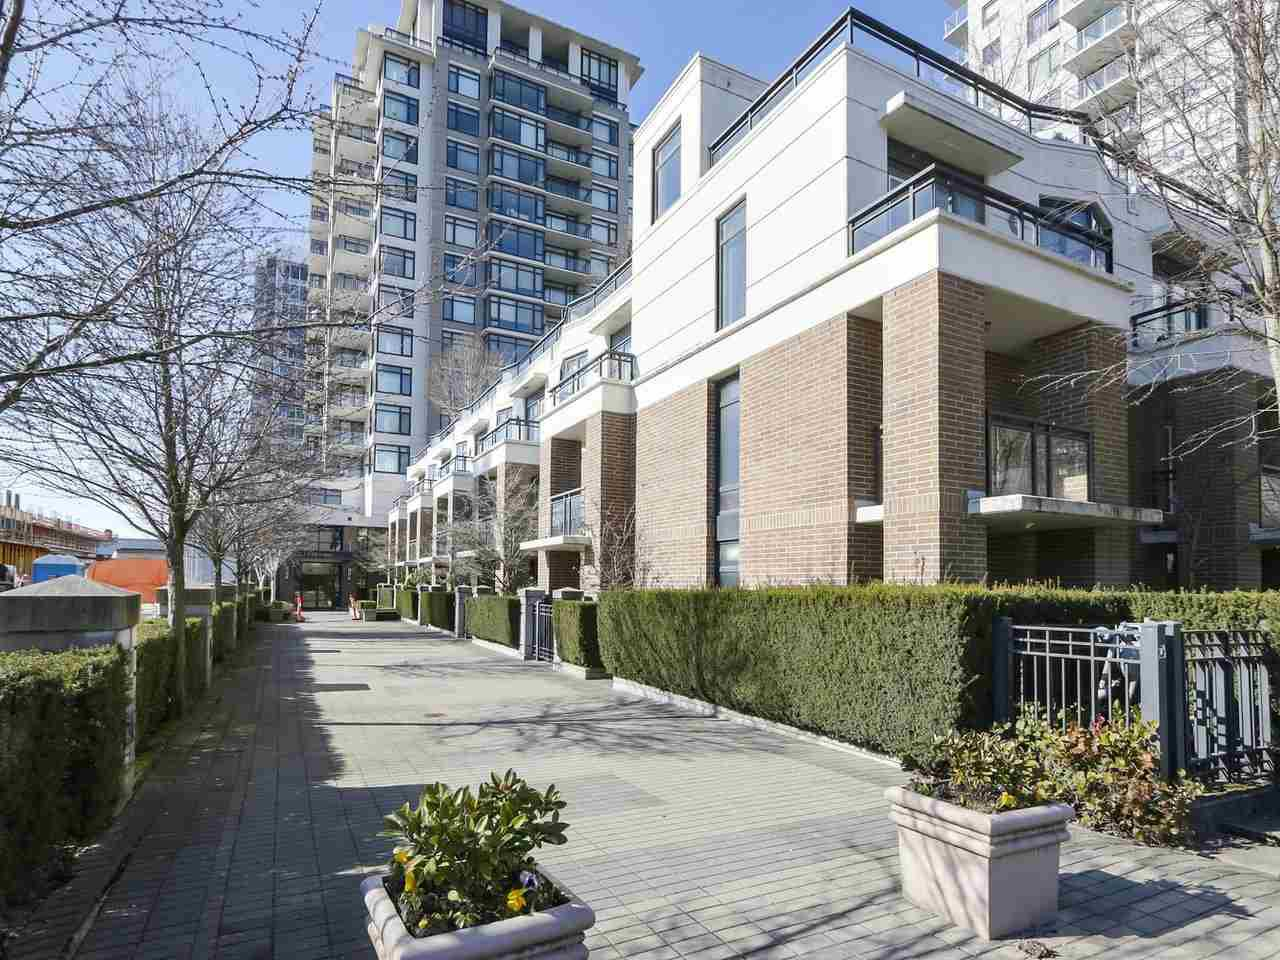 """Main Photo: 1205 6351 BUSWELL Street in Richmond: Brighouse Condo for sale in """"EMPORIO"""" : MLS®# R2452772"""